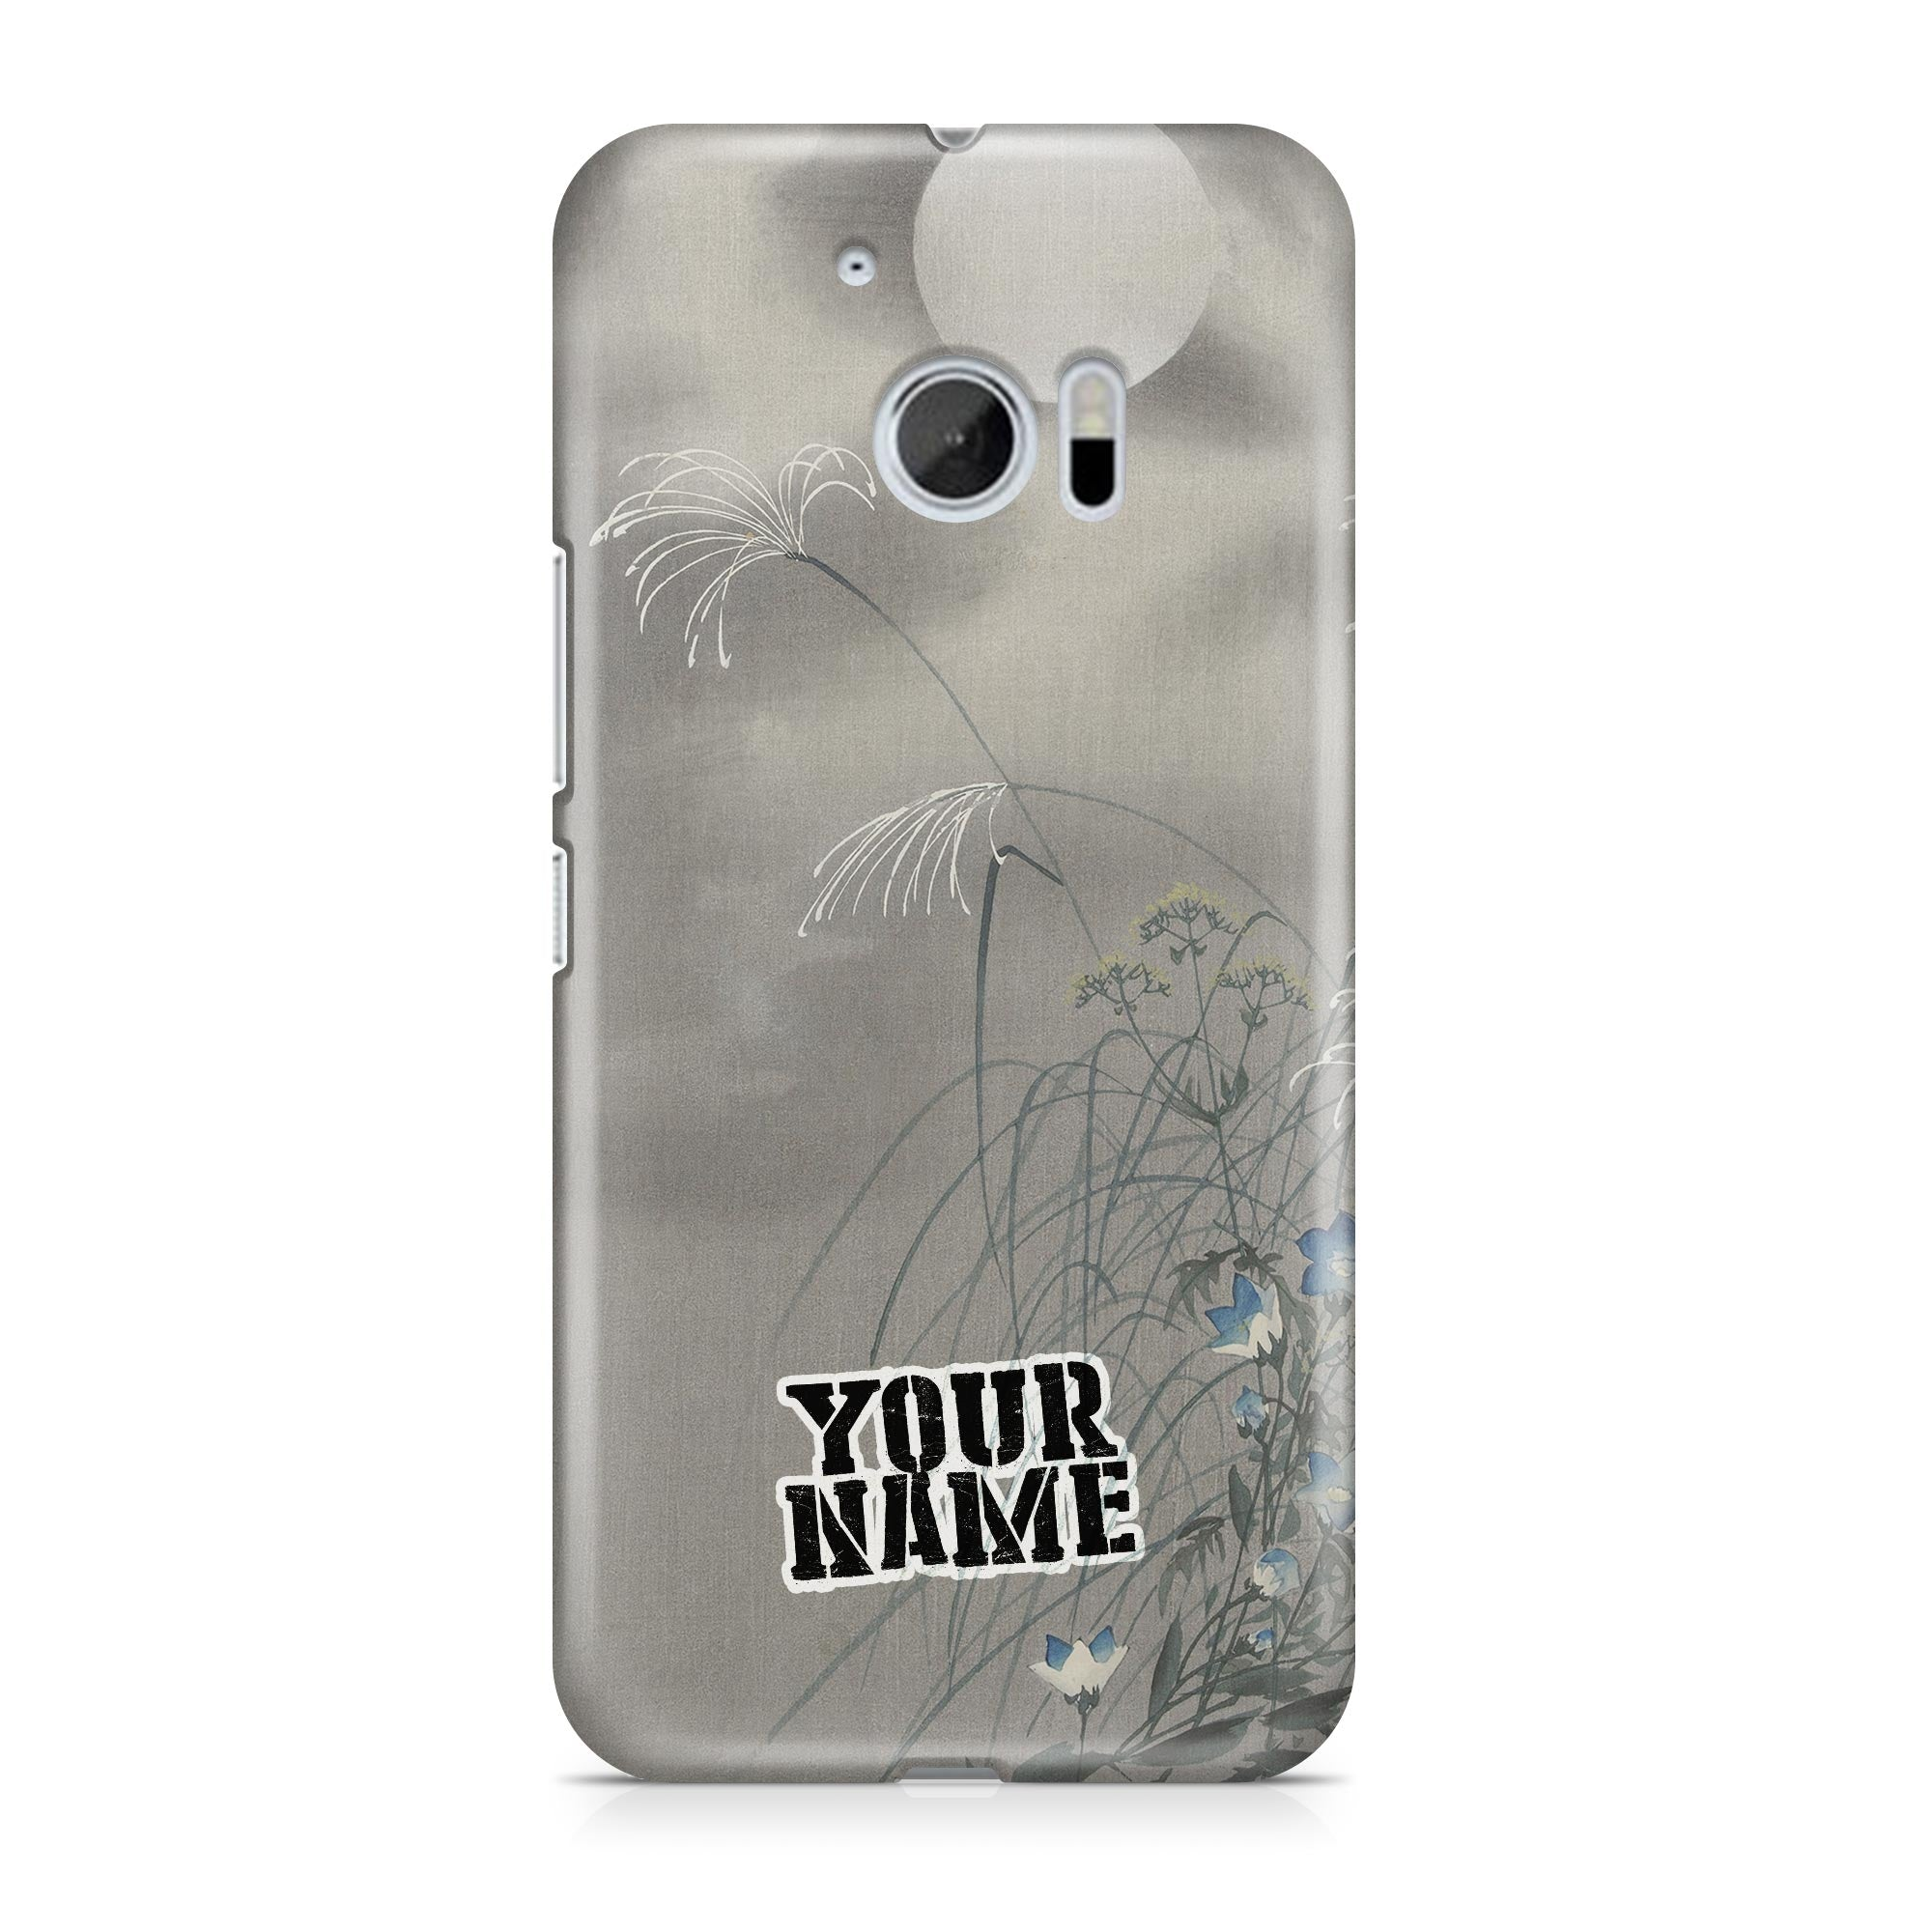 White Moon Grey Cloud Fog Japanese Art Phone Cases Cover